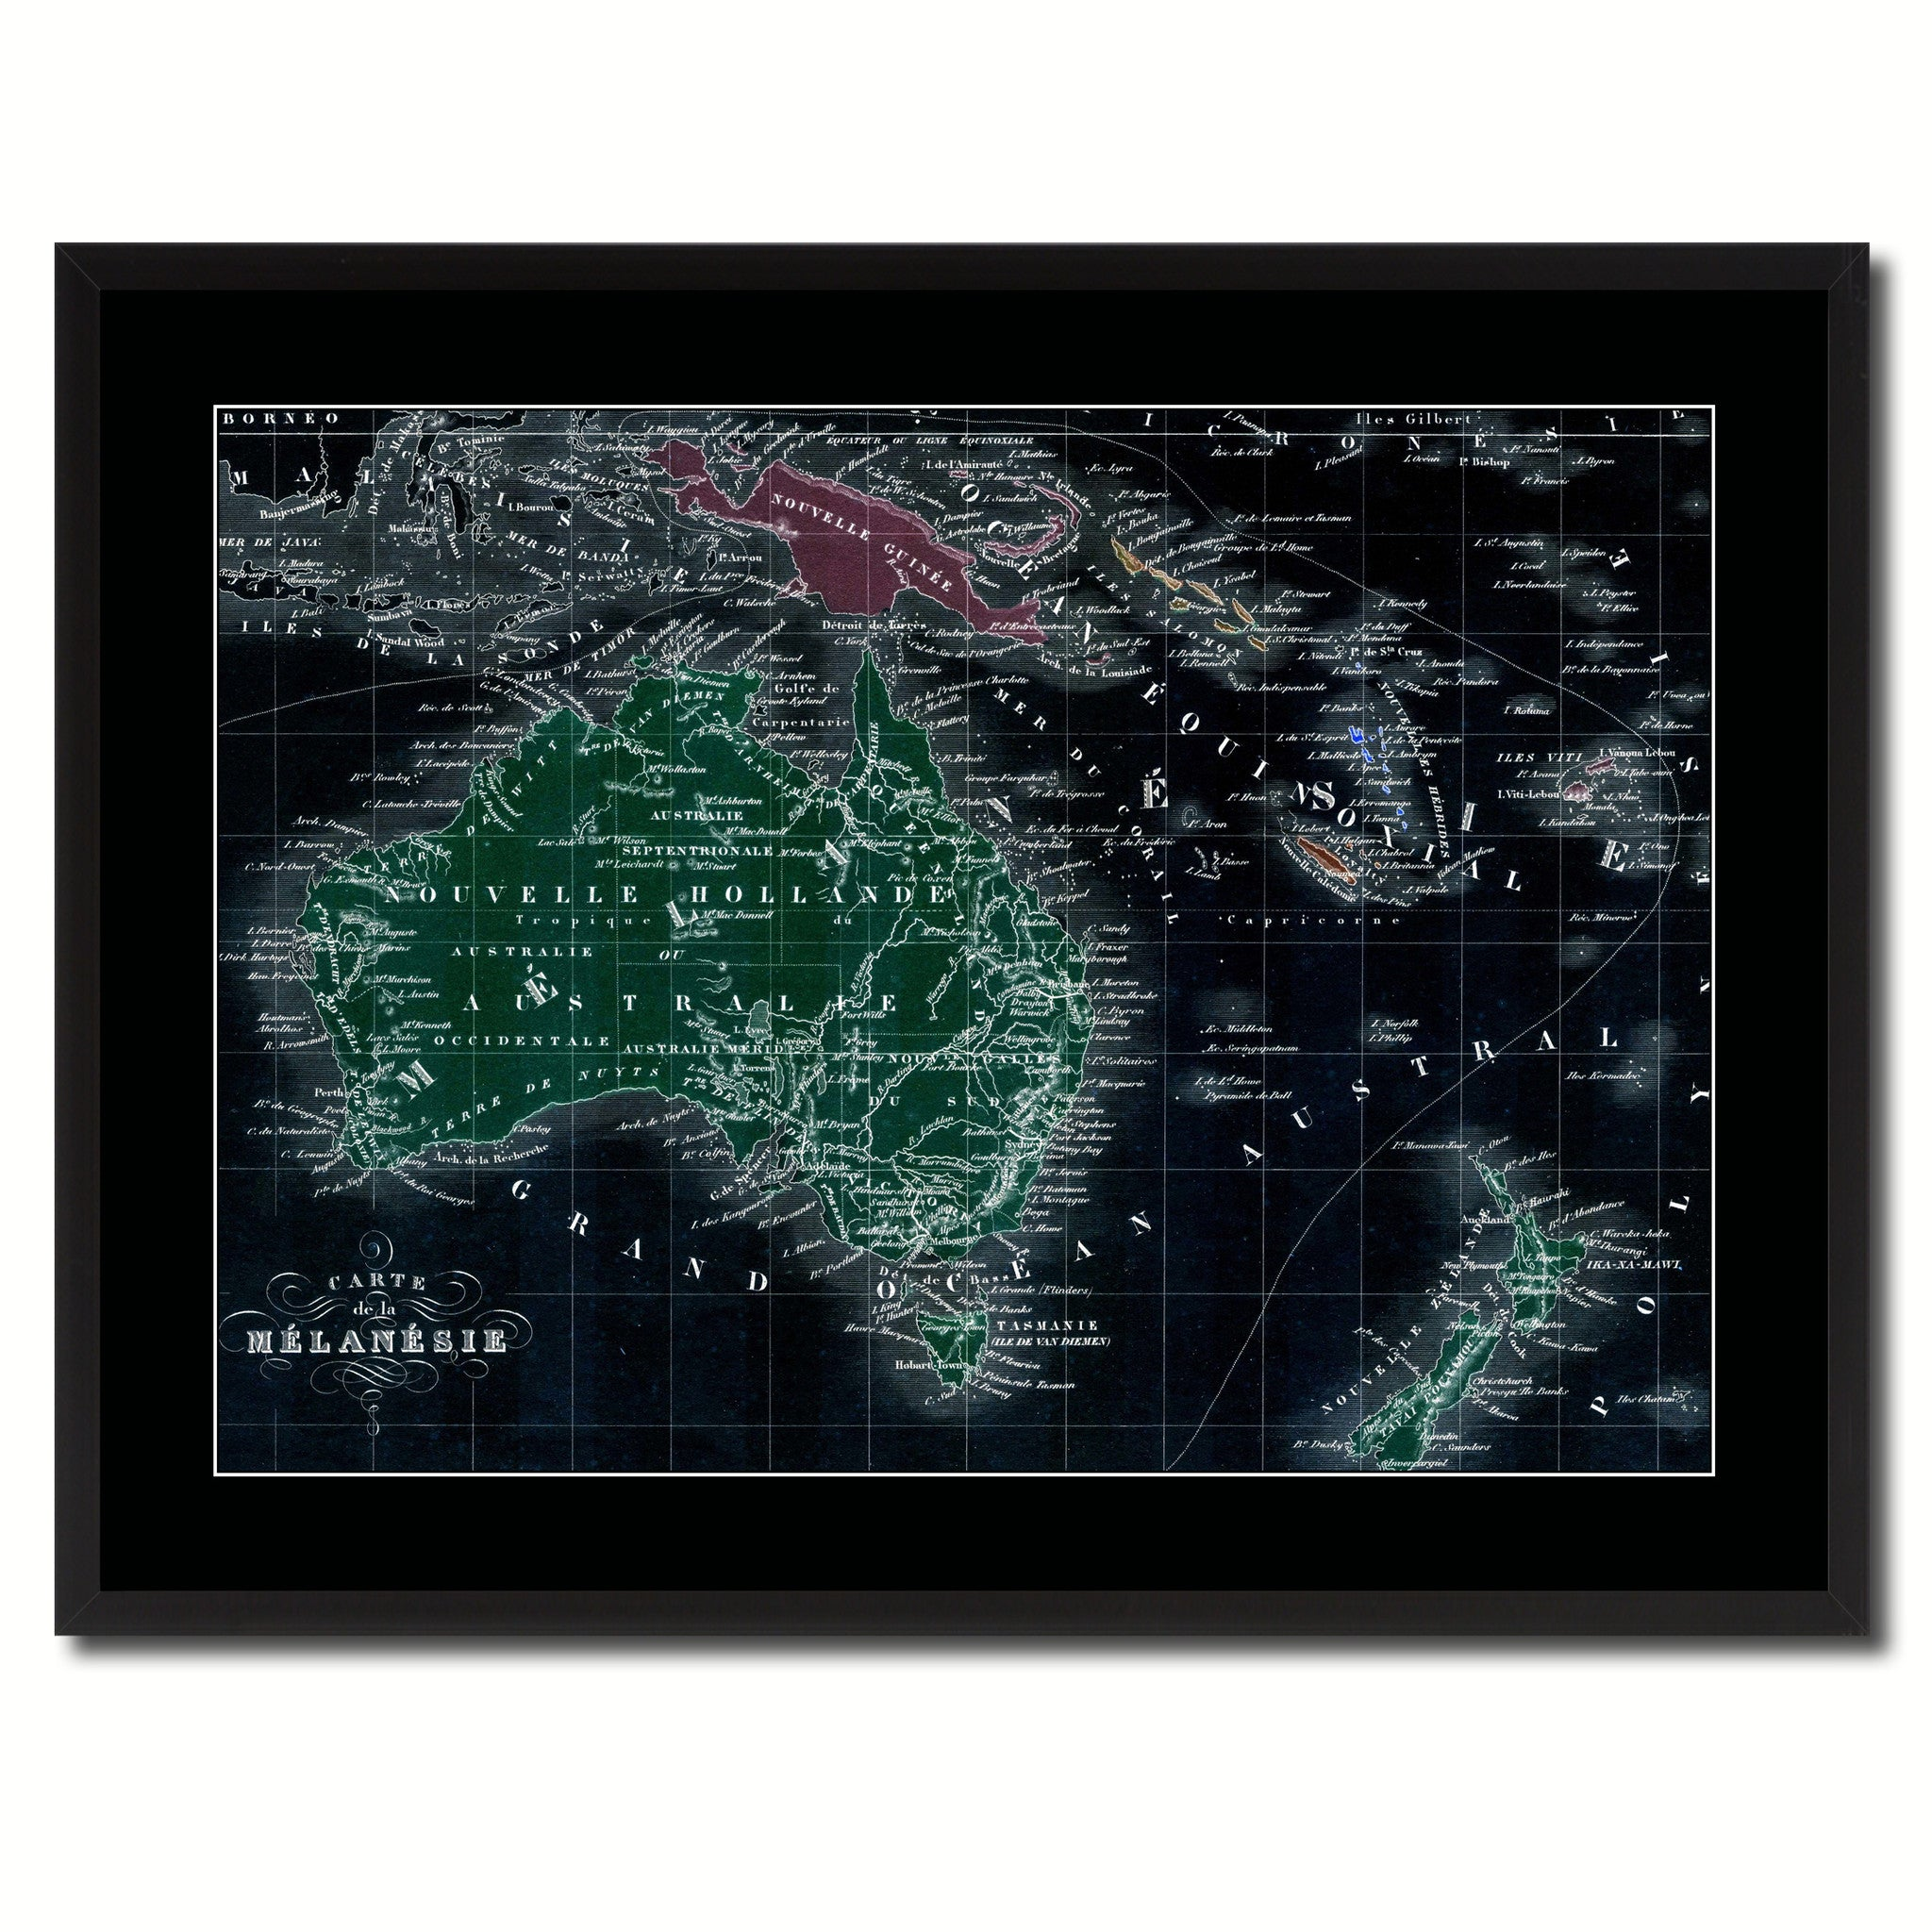 New Zealand Oceania Australia Vintage Vivid Color Map Canvas Print, Picture Frame Home Decor Wall Art Office Decoration Gift Ideas